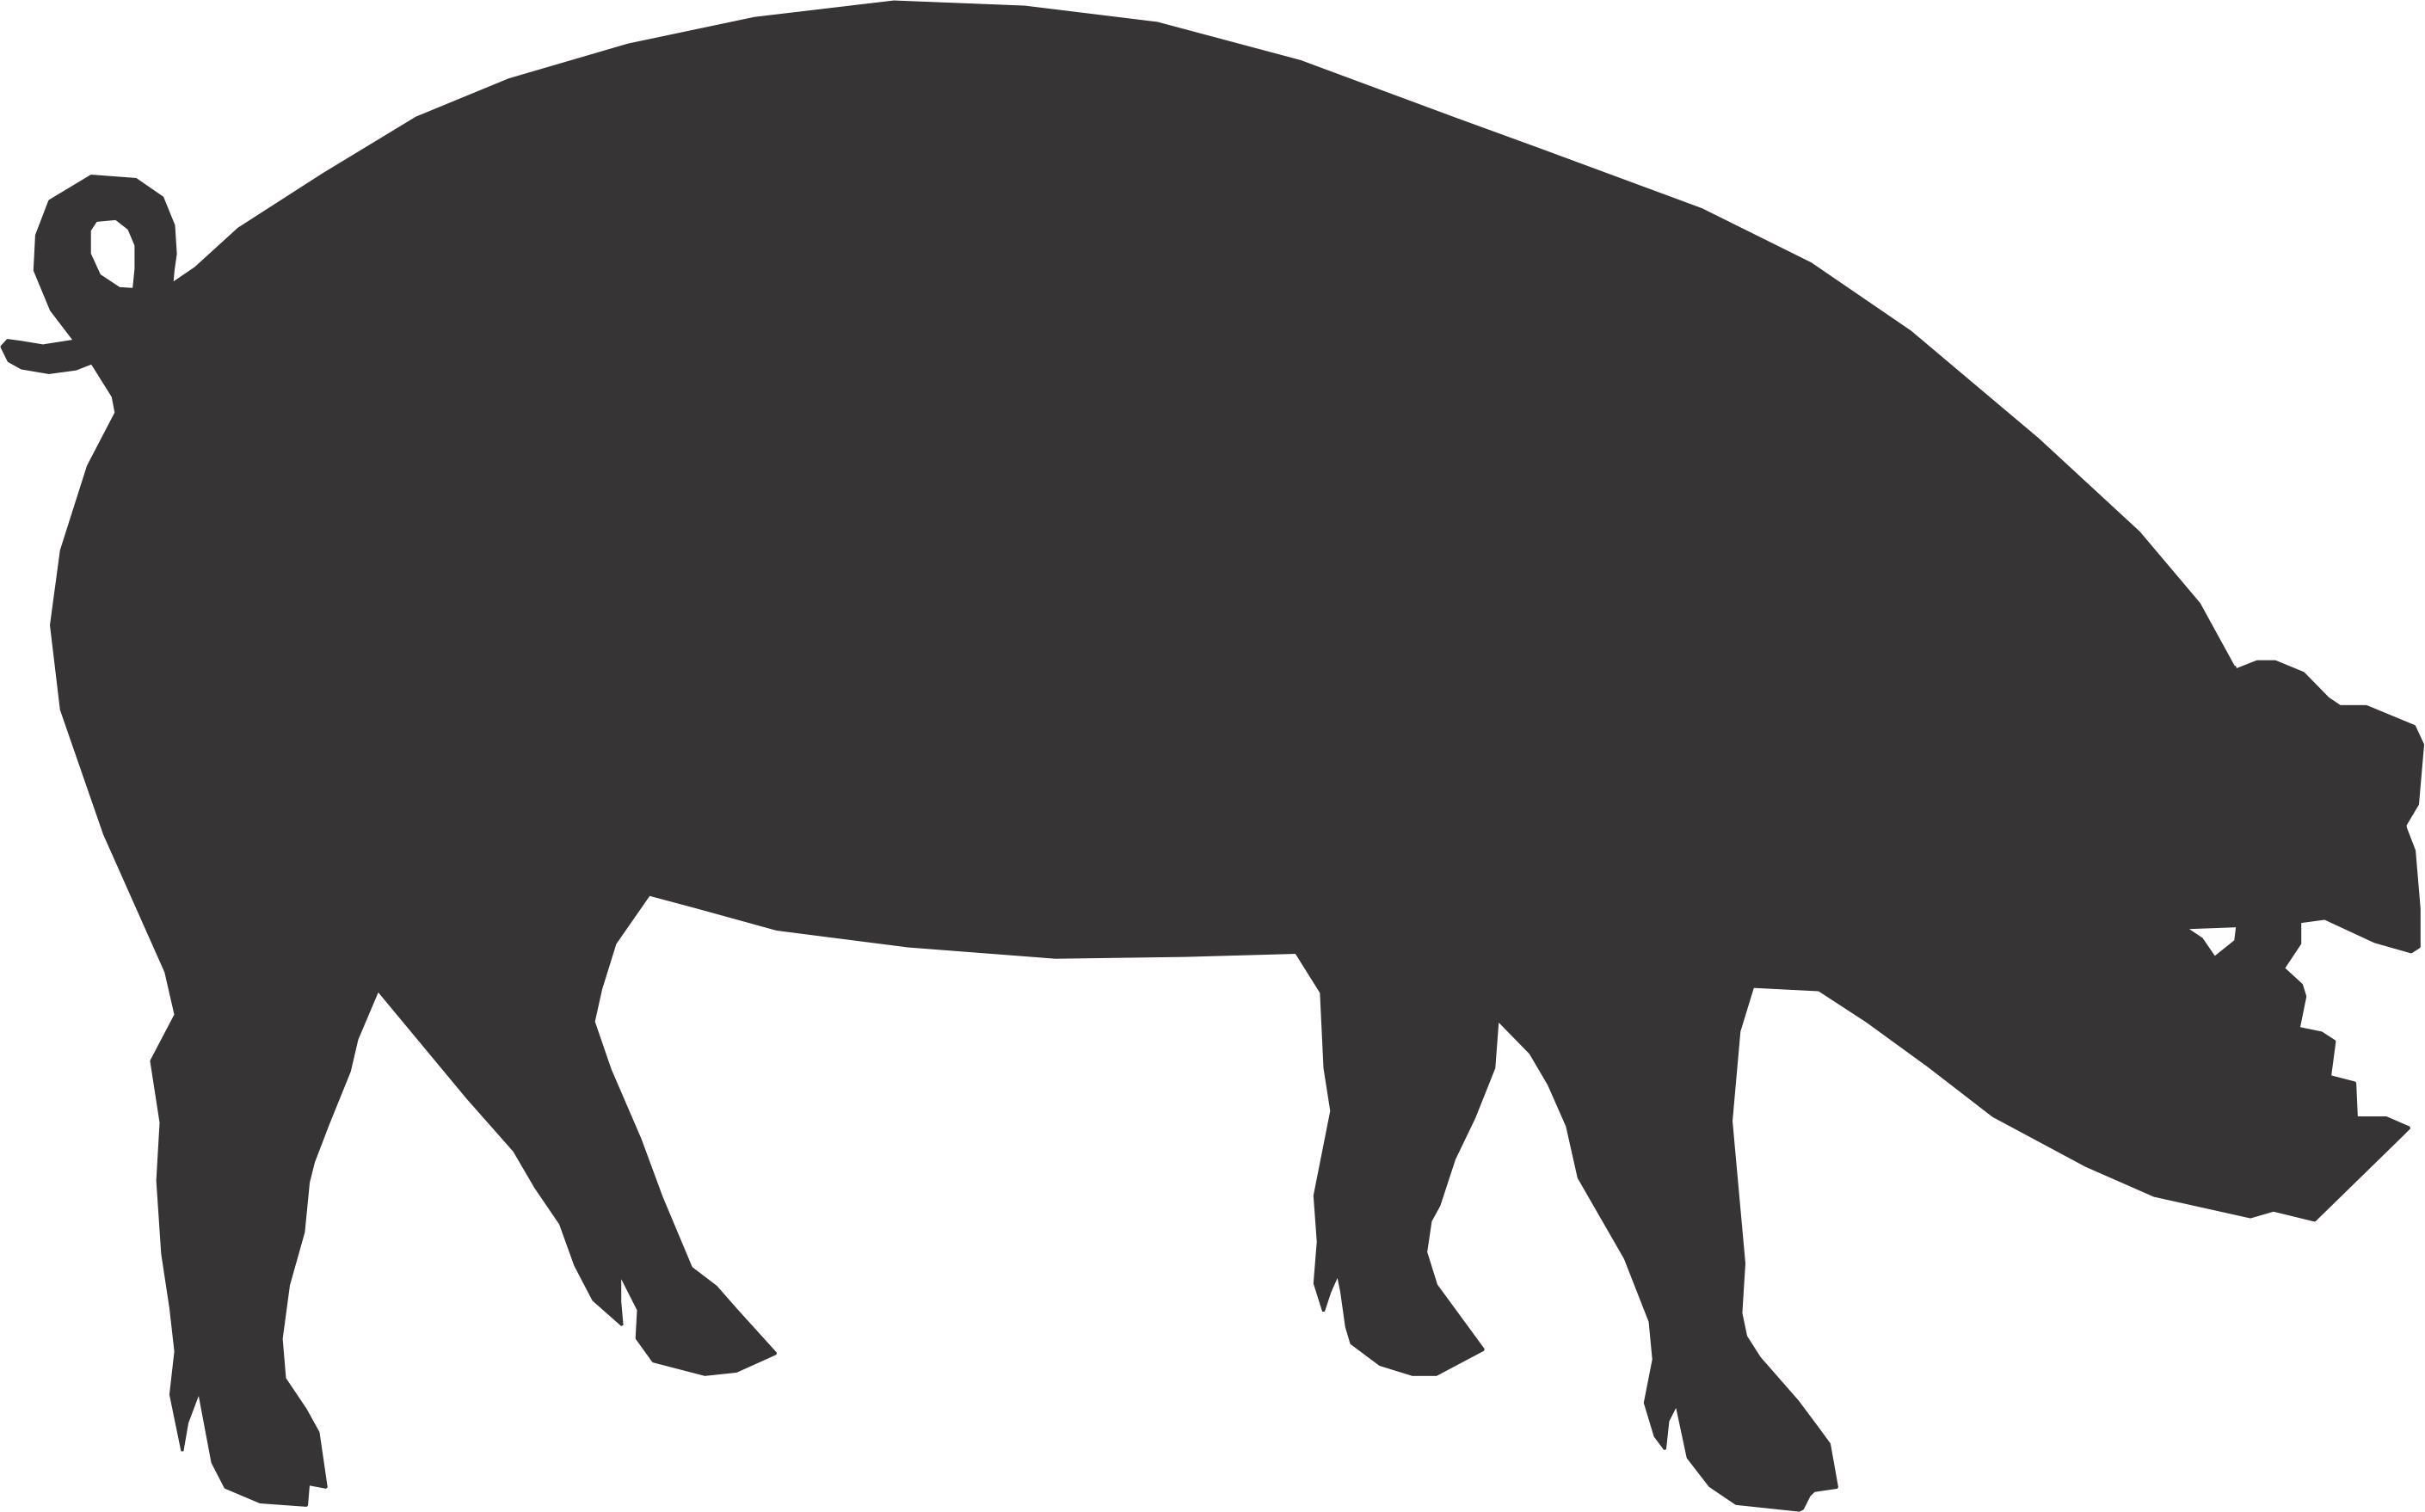 Pin by Tutto Food Co. on Food Decor | Pig images, Animals ...